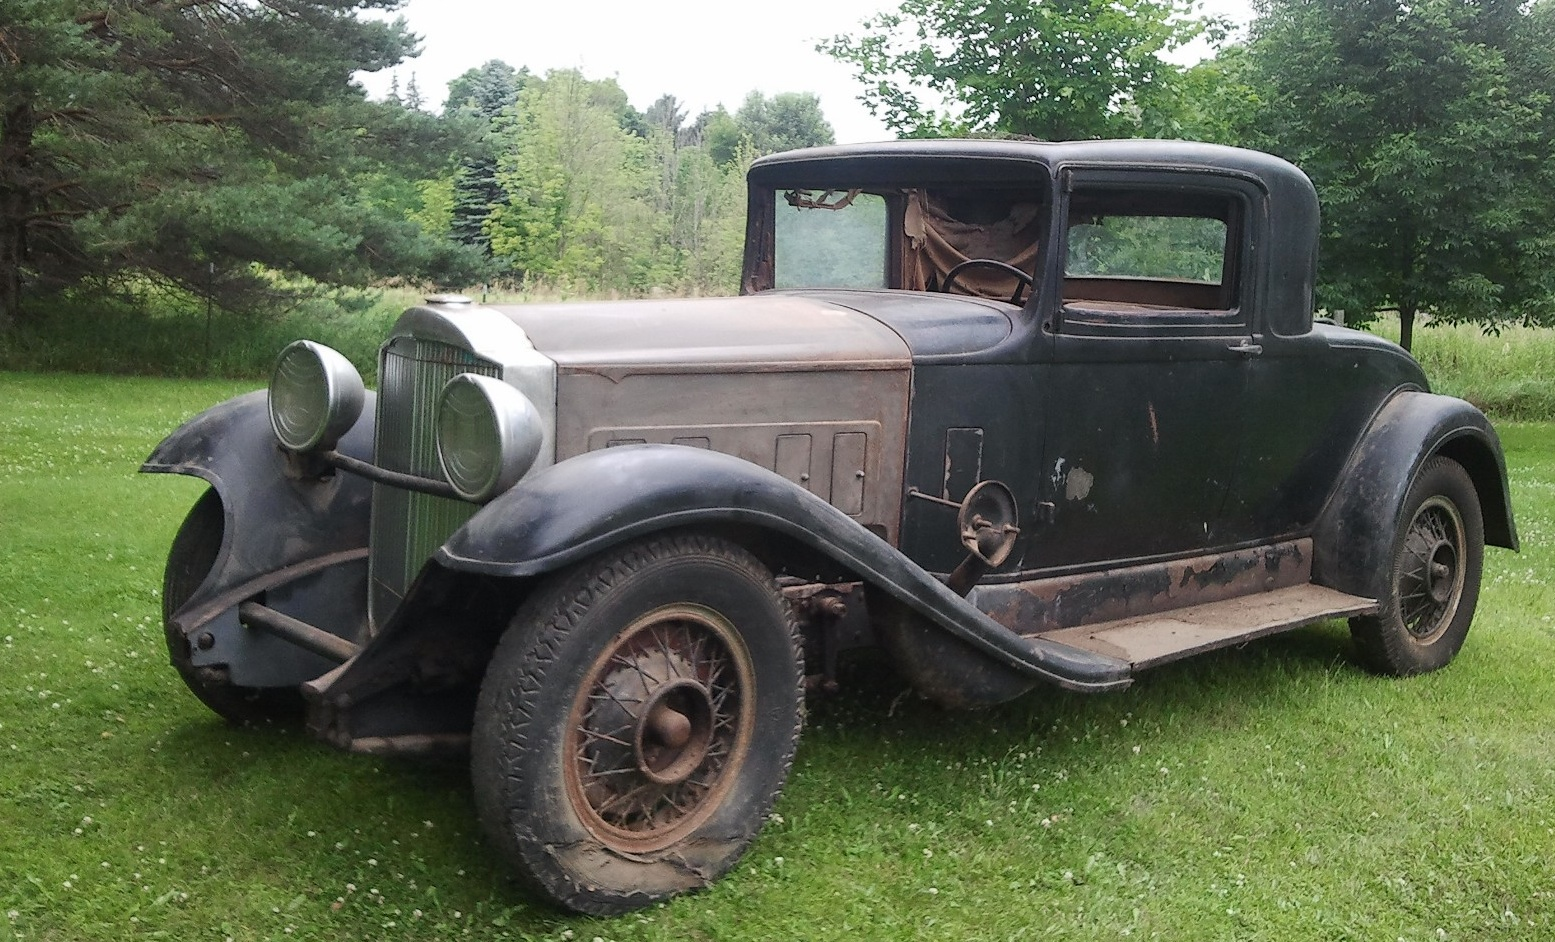 1932 Packard 3 Window, Rumble Seat Coupe: Original, Unrestored with ...